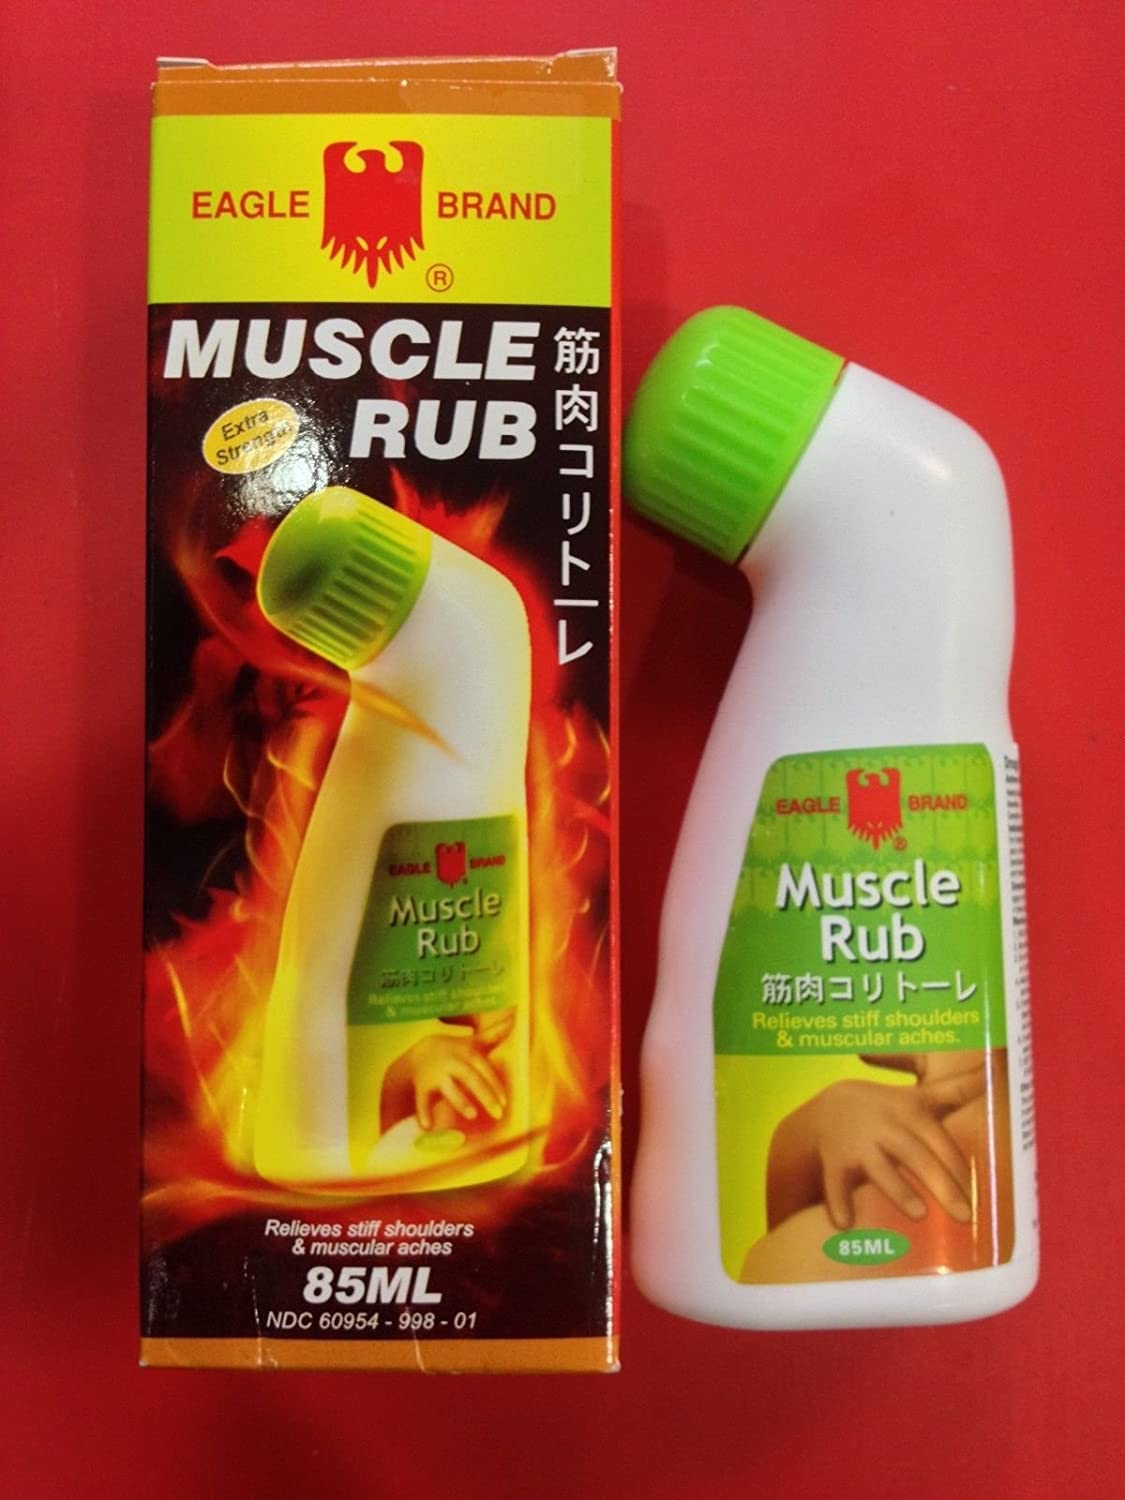 Singapore Original Eagle Brand Muscle Rub 85ml ????? Relieves Stiff Shulders & Muscular Aches